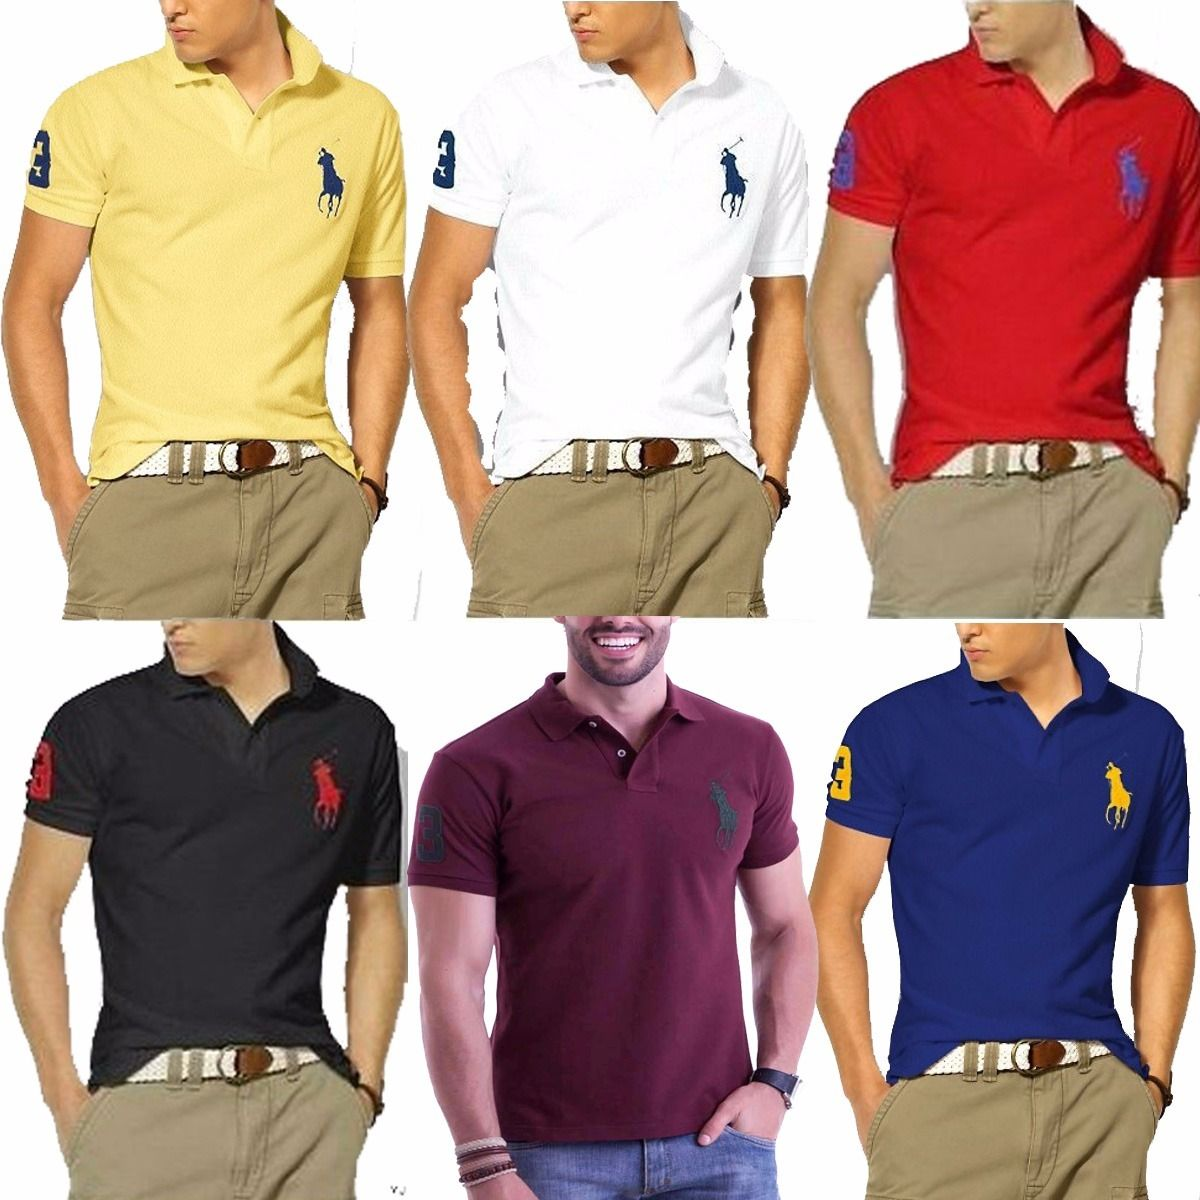 POLO RALPH LAUREN BIG PONEY  - Maicon Fernando Pedroso